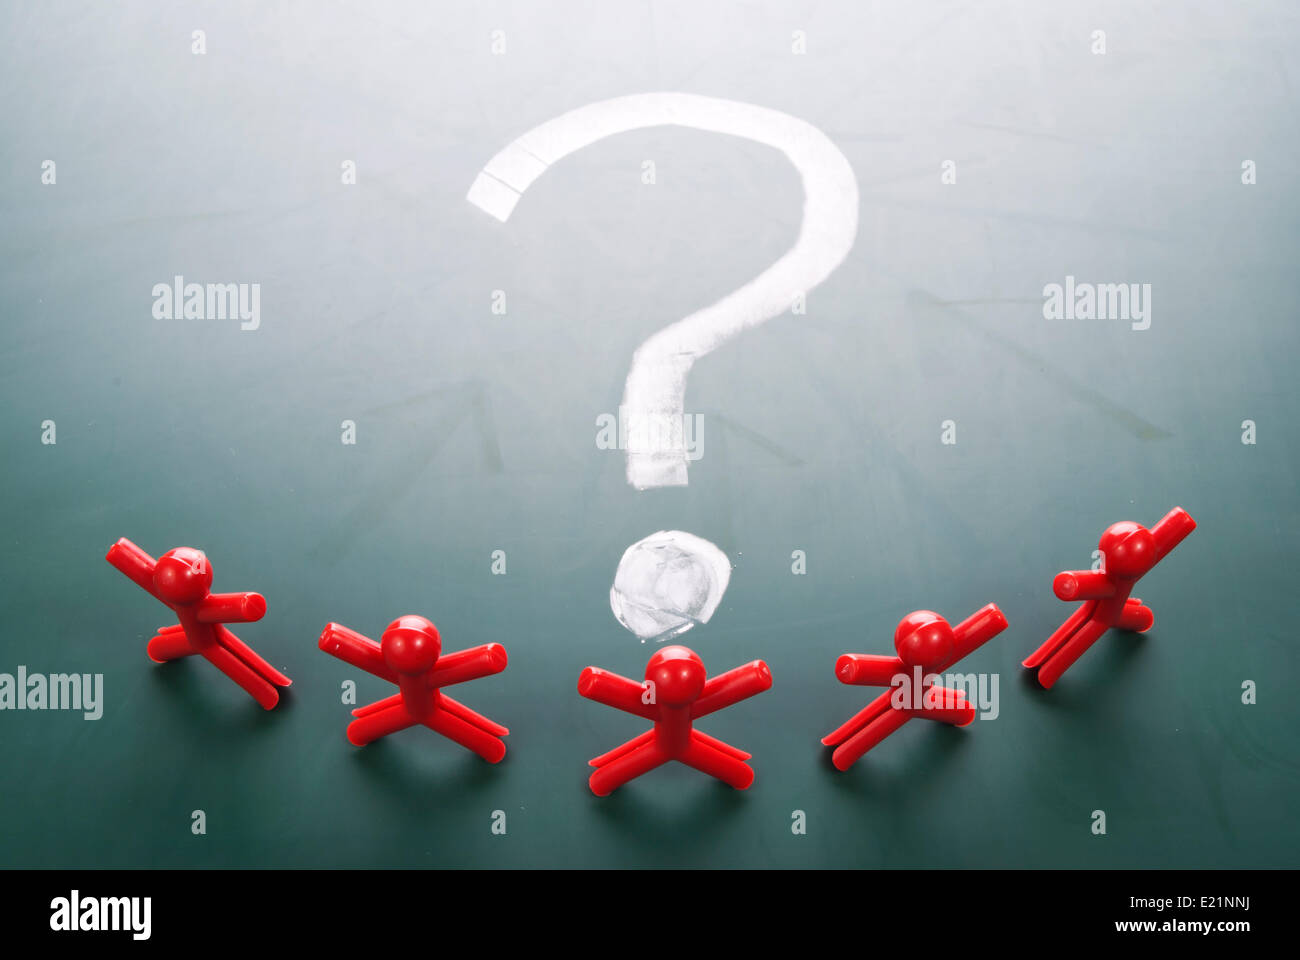 Business team face question mark - Stock Image